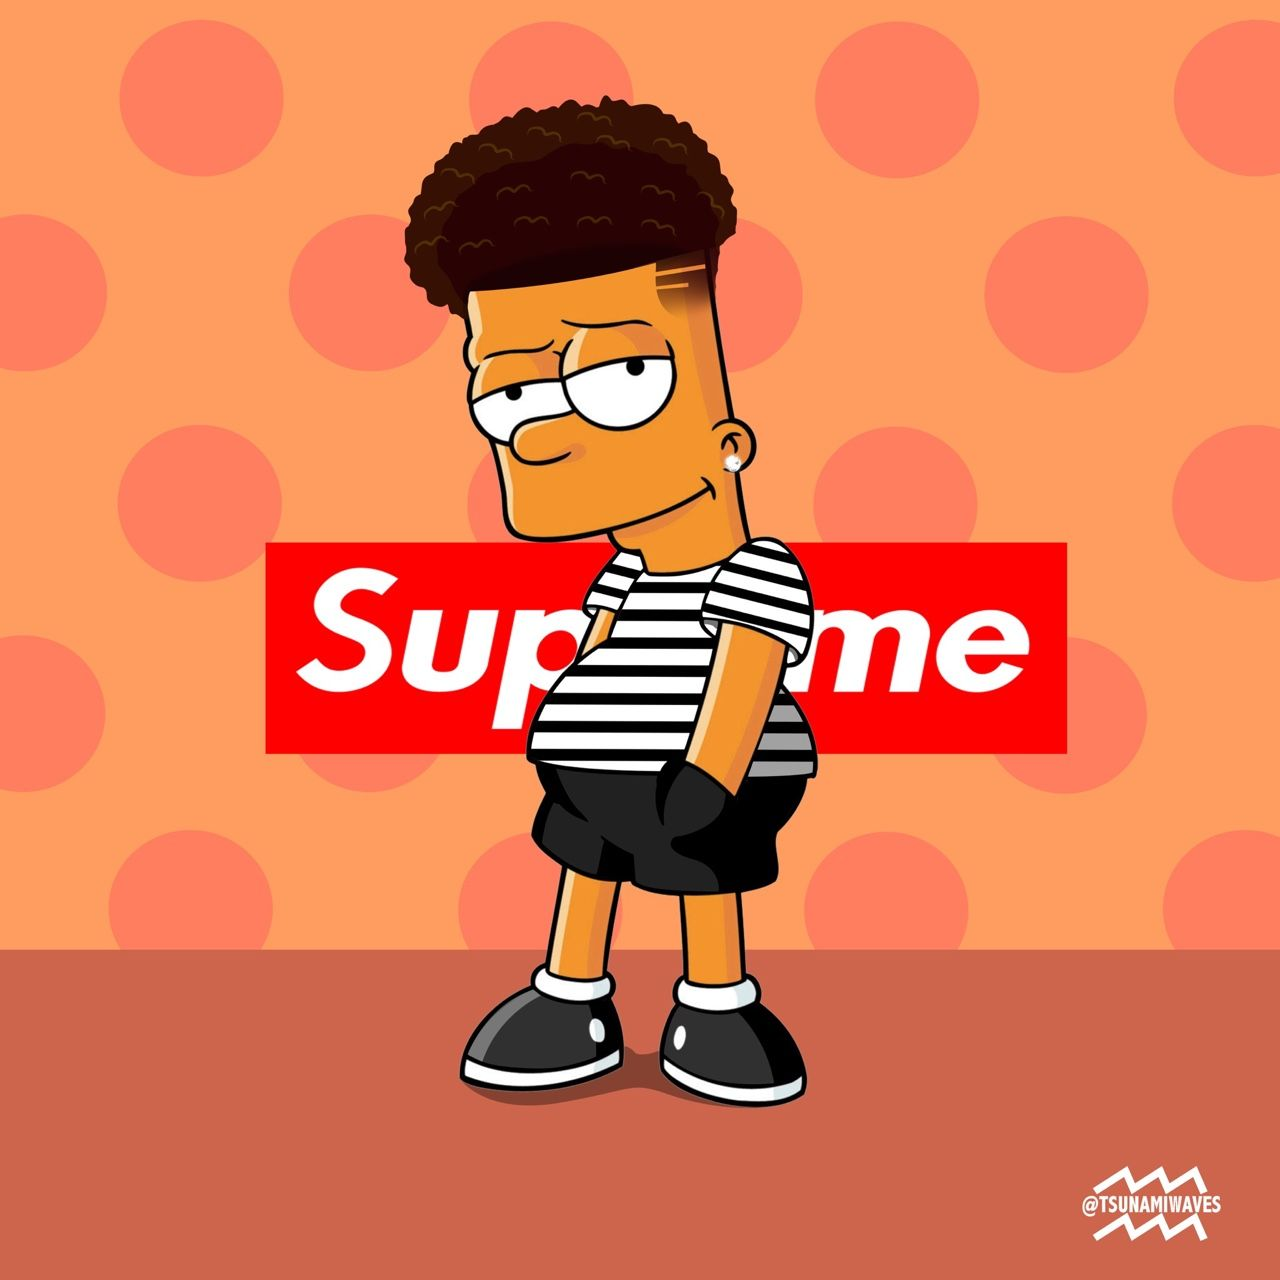 Black Bart Simpson Wallpapers Top Free Black Bart Simpson